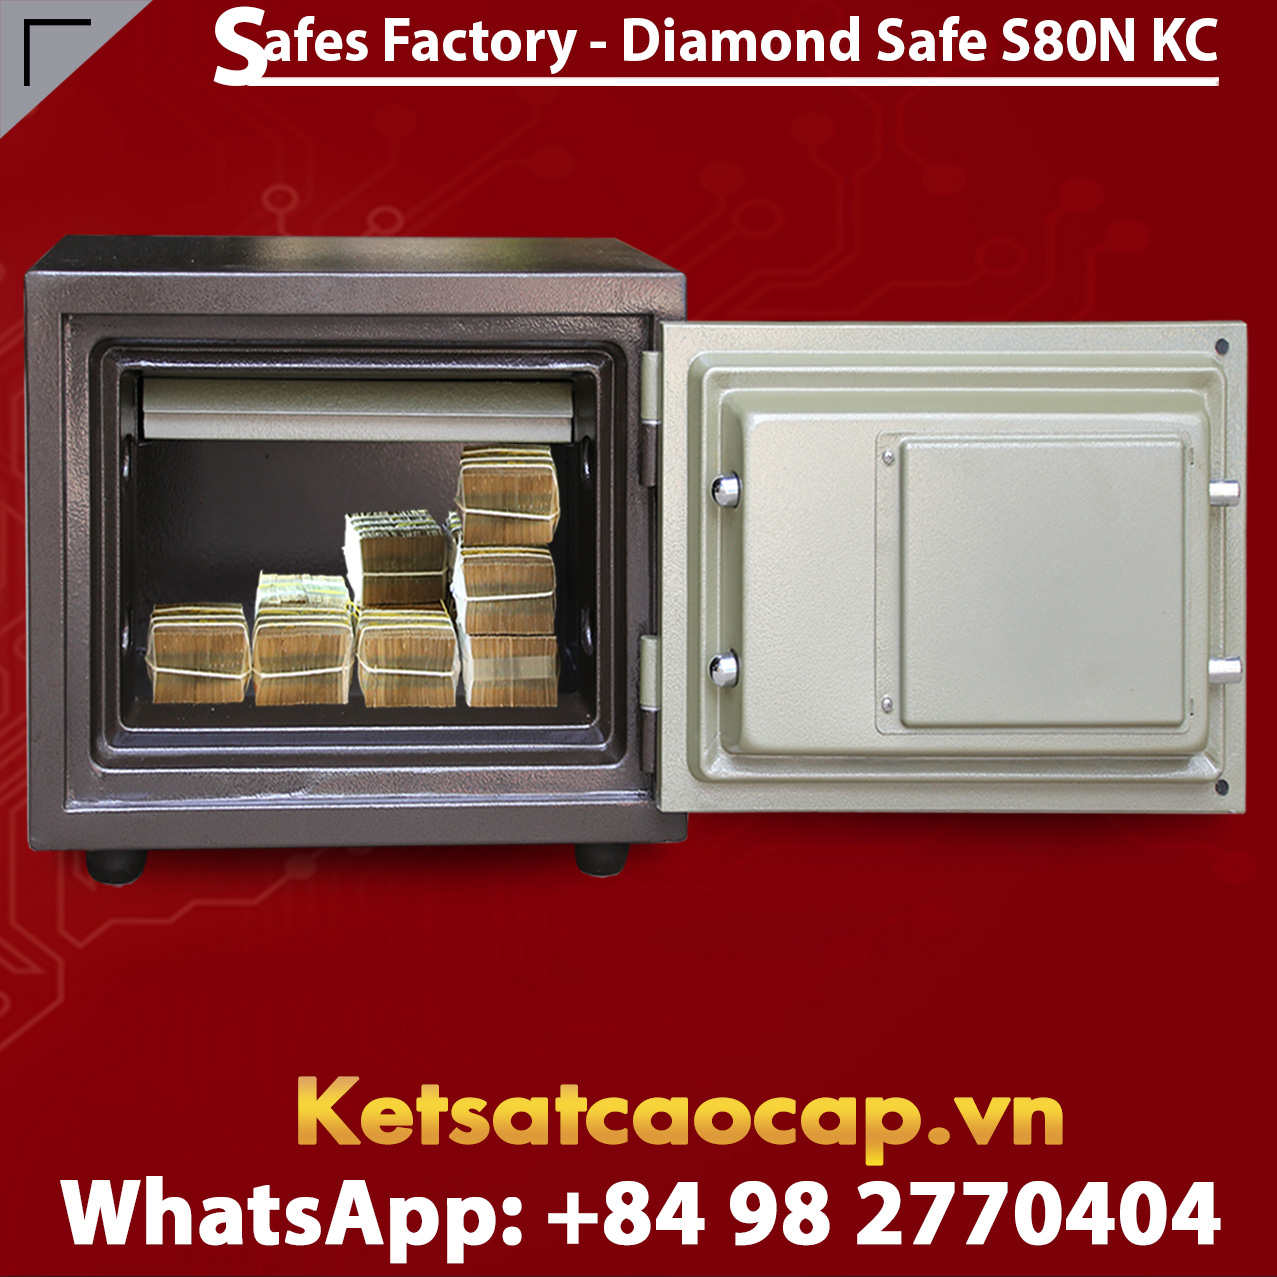 Diamond Safe KS80N KC Black